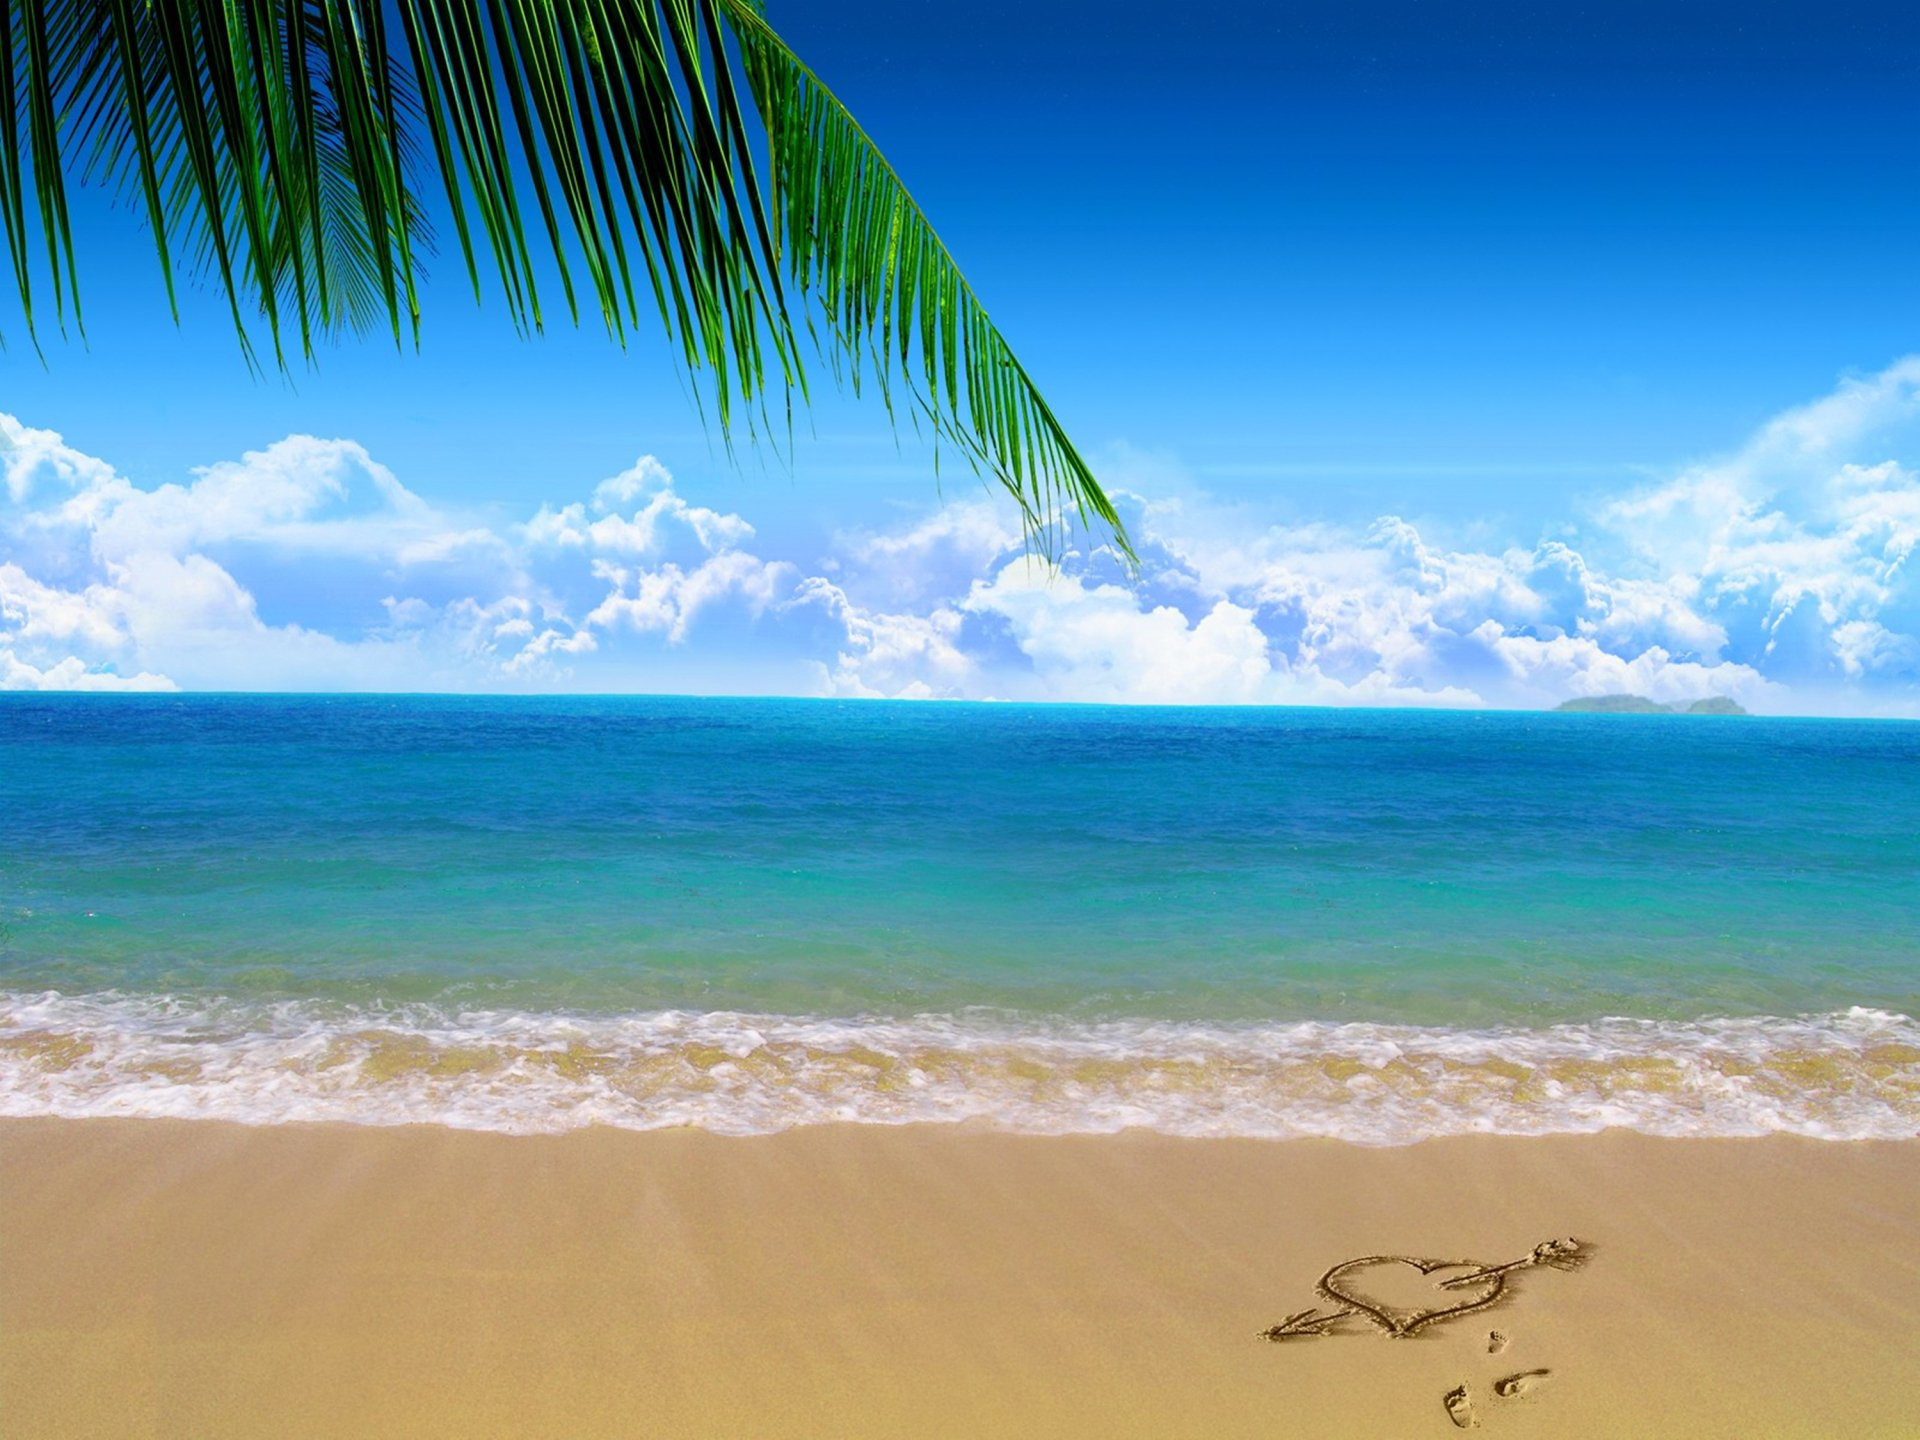 Earth - Beach  Nature Palm Tree Sand Sea Heart Cloud Horizon Wallpaper